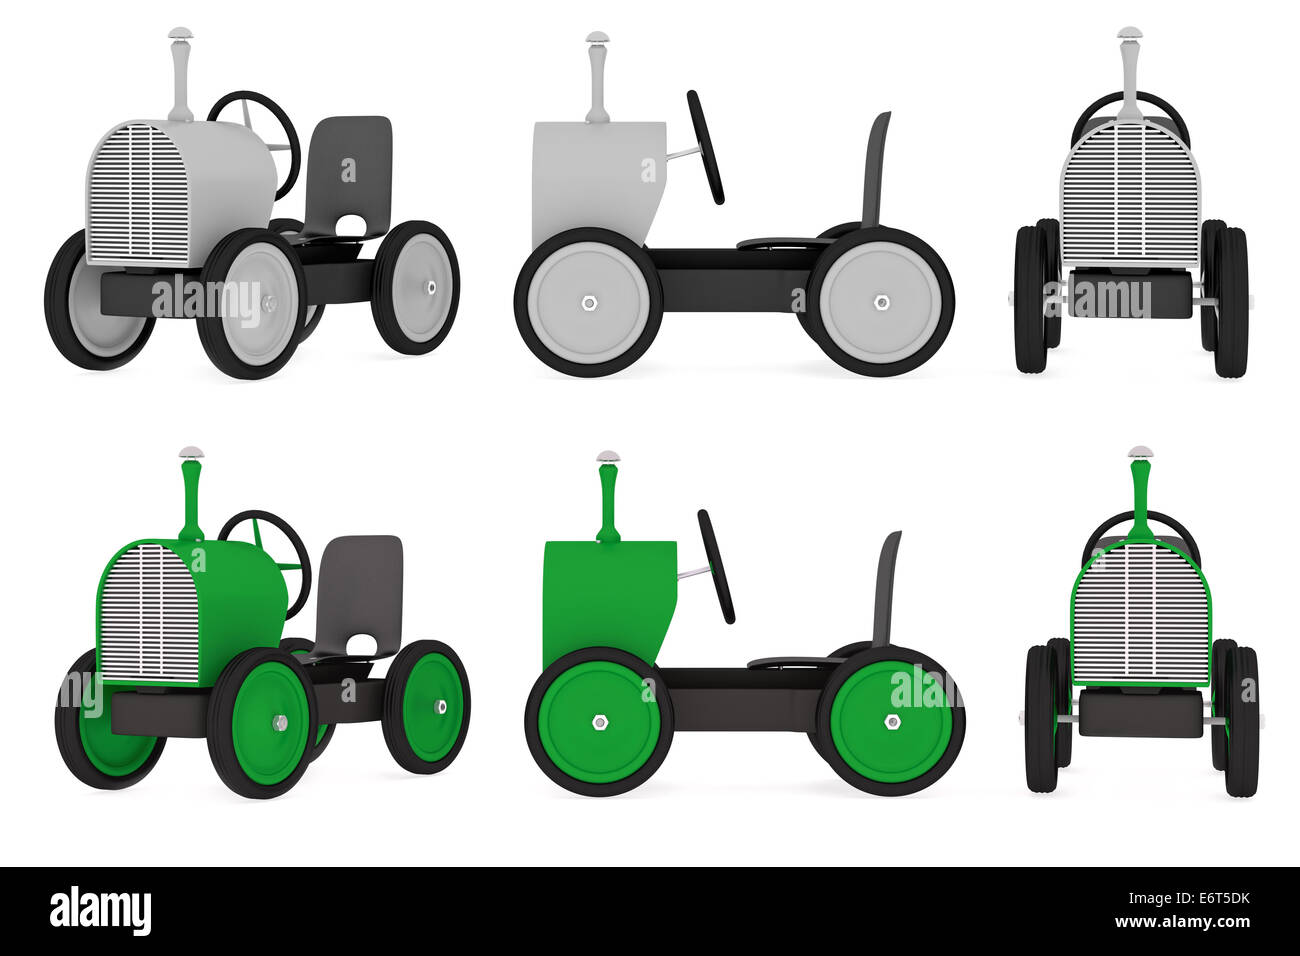 Toy tractor collection, silver and green colors, rendered model - Stock Image